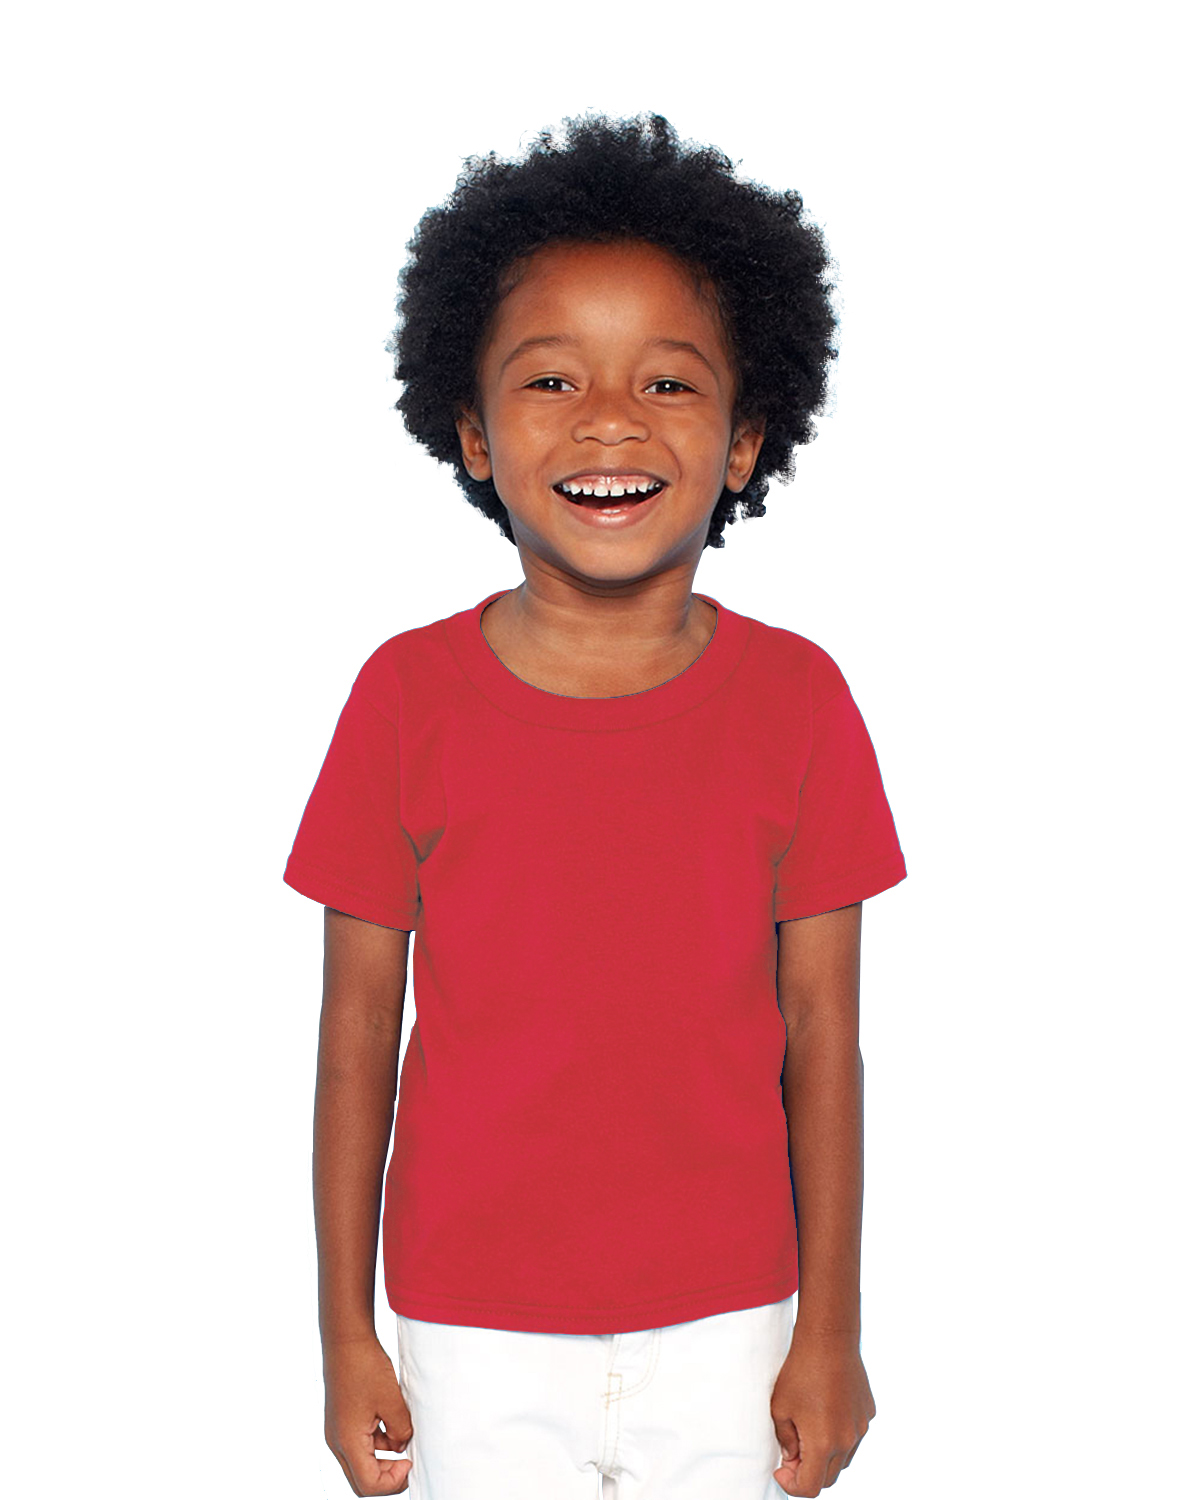 c809b098385 Gildan G510P Heavy Cotton Toddler 5.3 oz. T-Shirt - Shirtmax